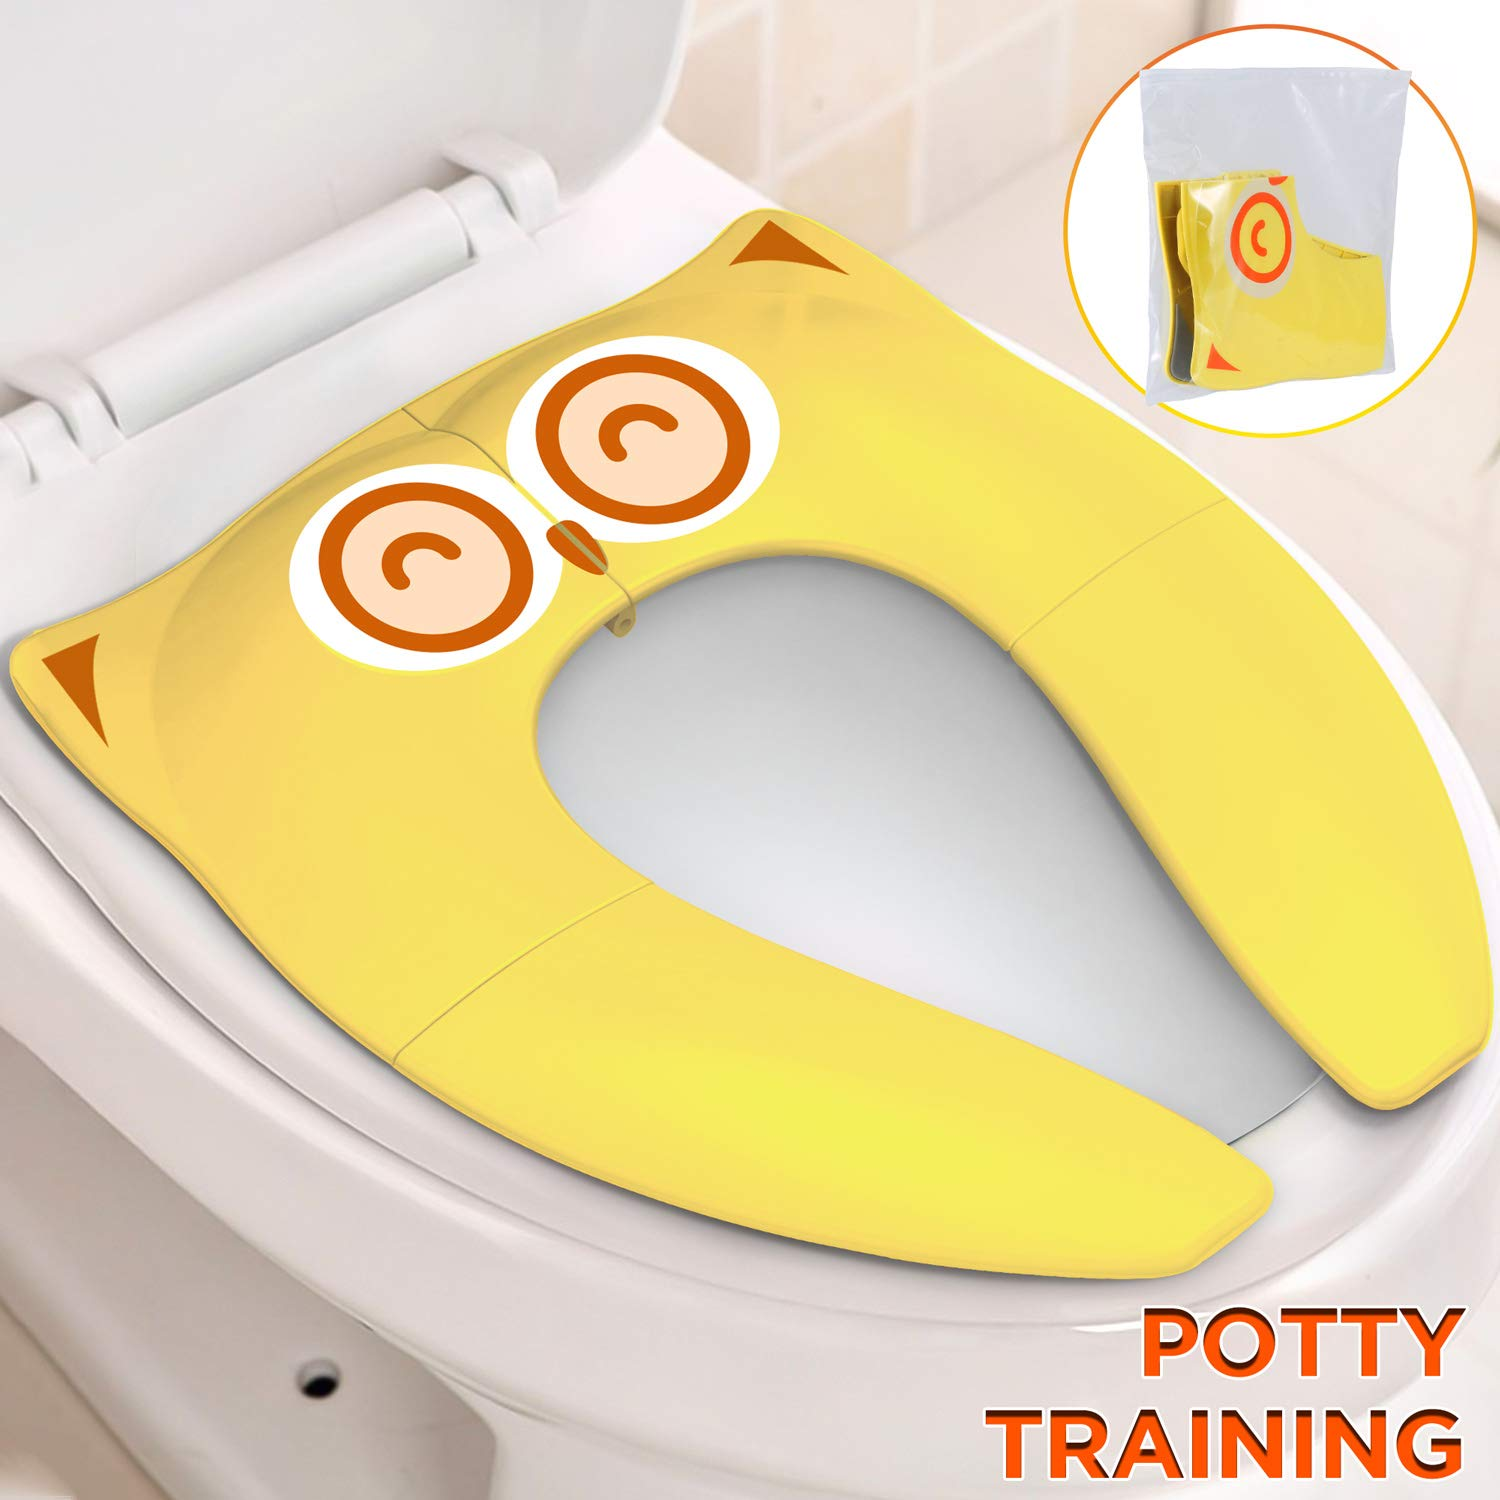 Stupendous Gimars Upgrade Folding Large Non Slip Silicone Pads Travel Portable Reusable Toilet Potty Training Seat Covers Liners With Carry Bag For Babies Creativecarmelina Interior Chair Design Creativecarmelinacom